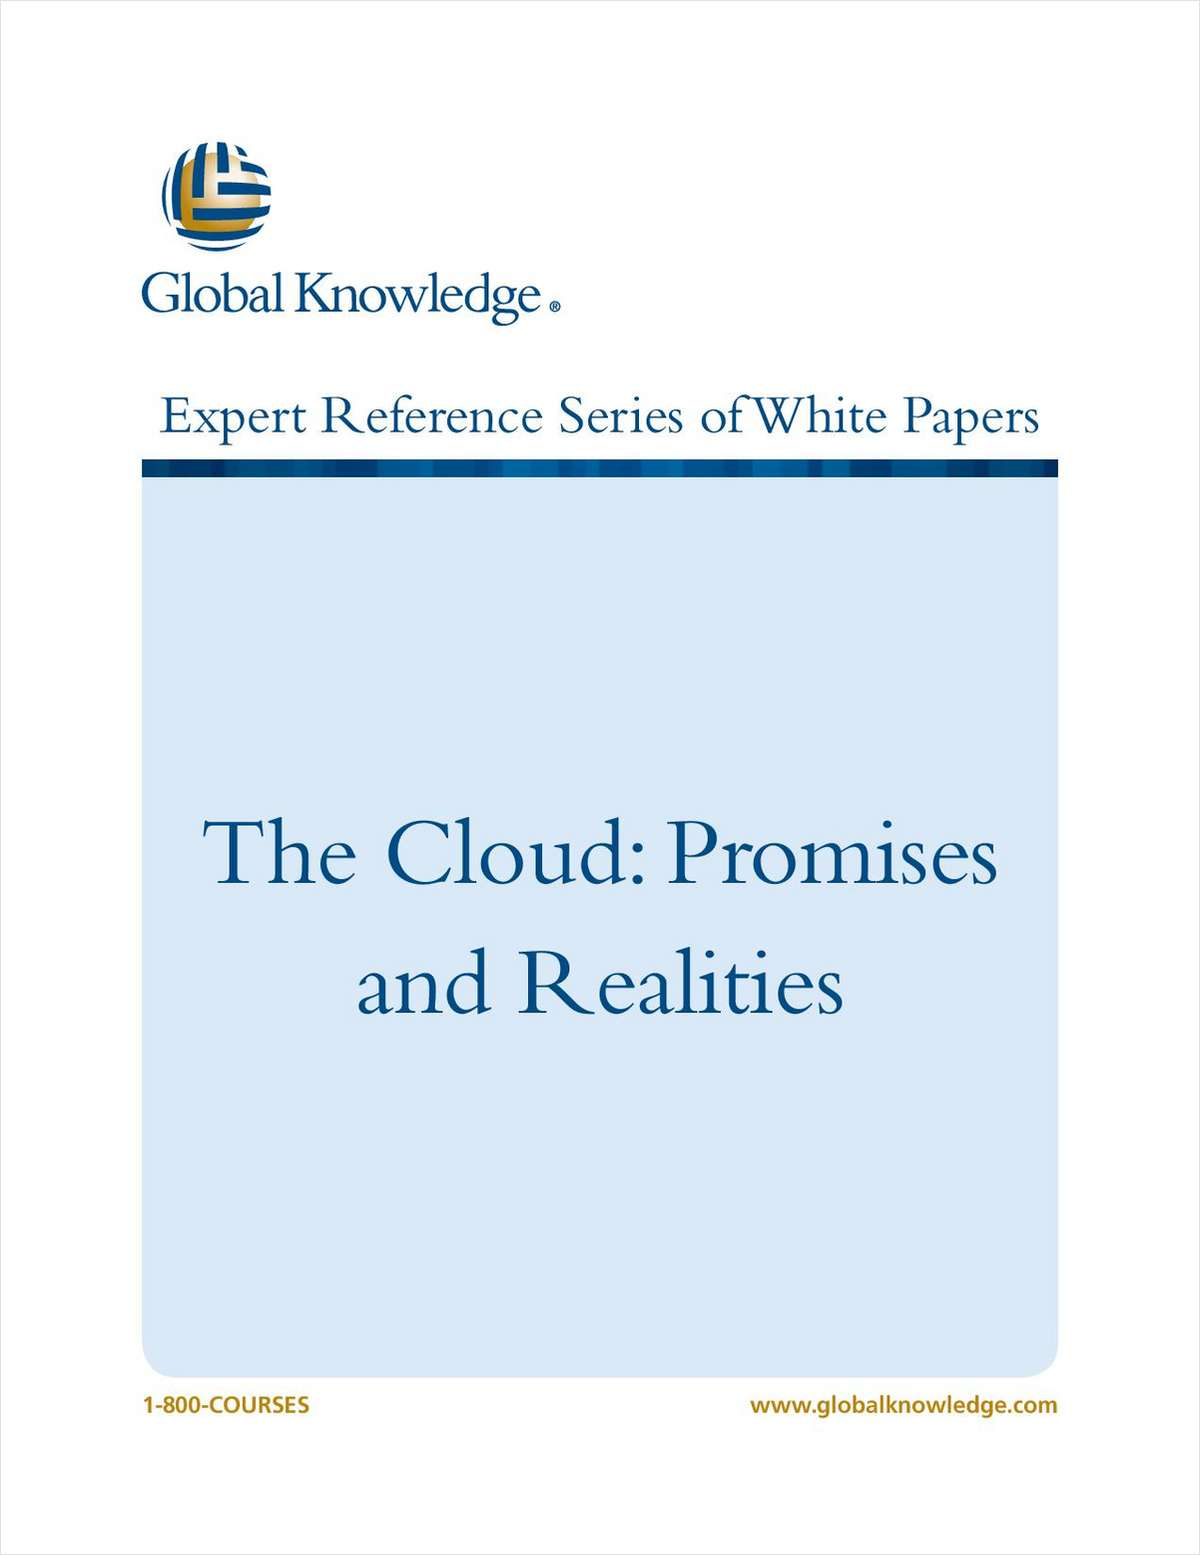 The Cloud: Promises and Realities